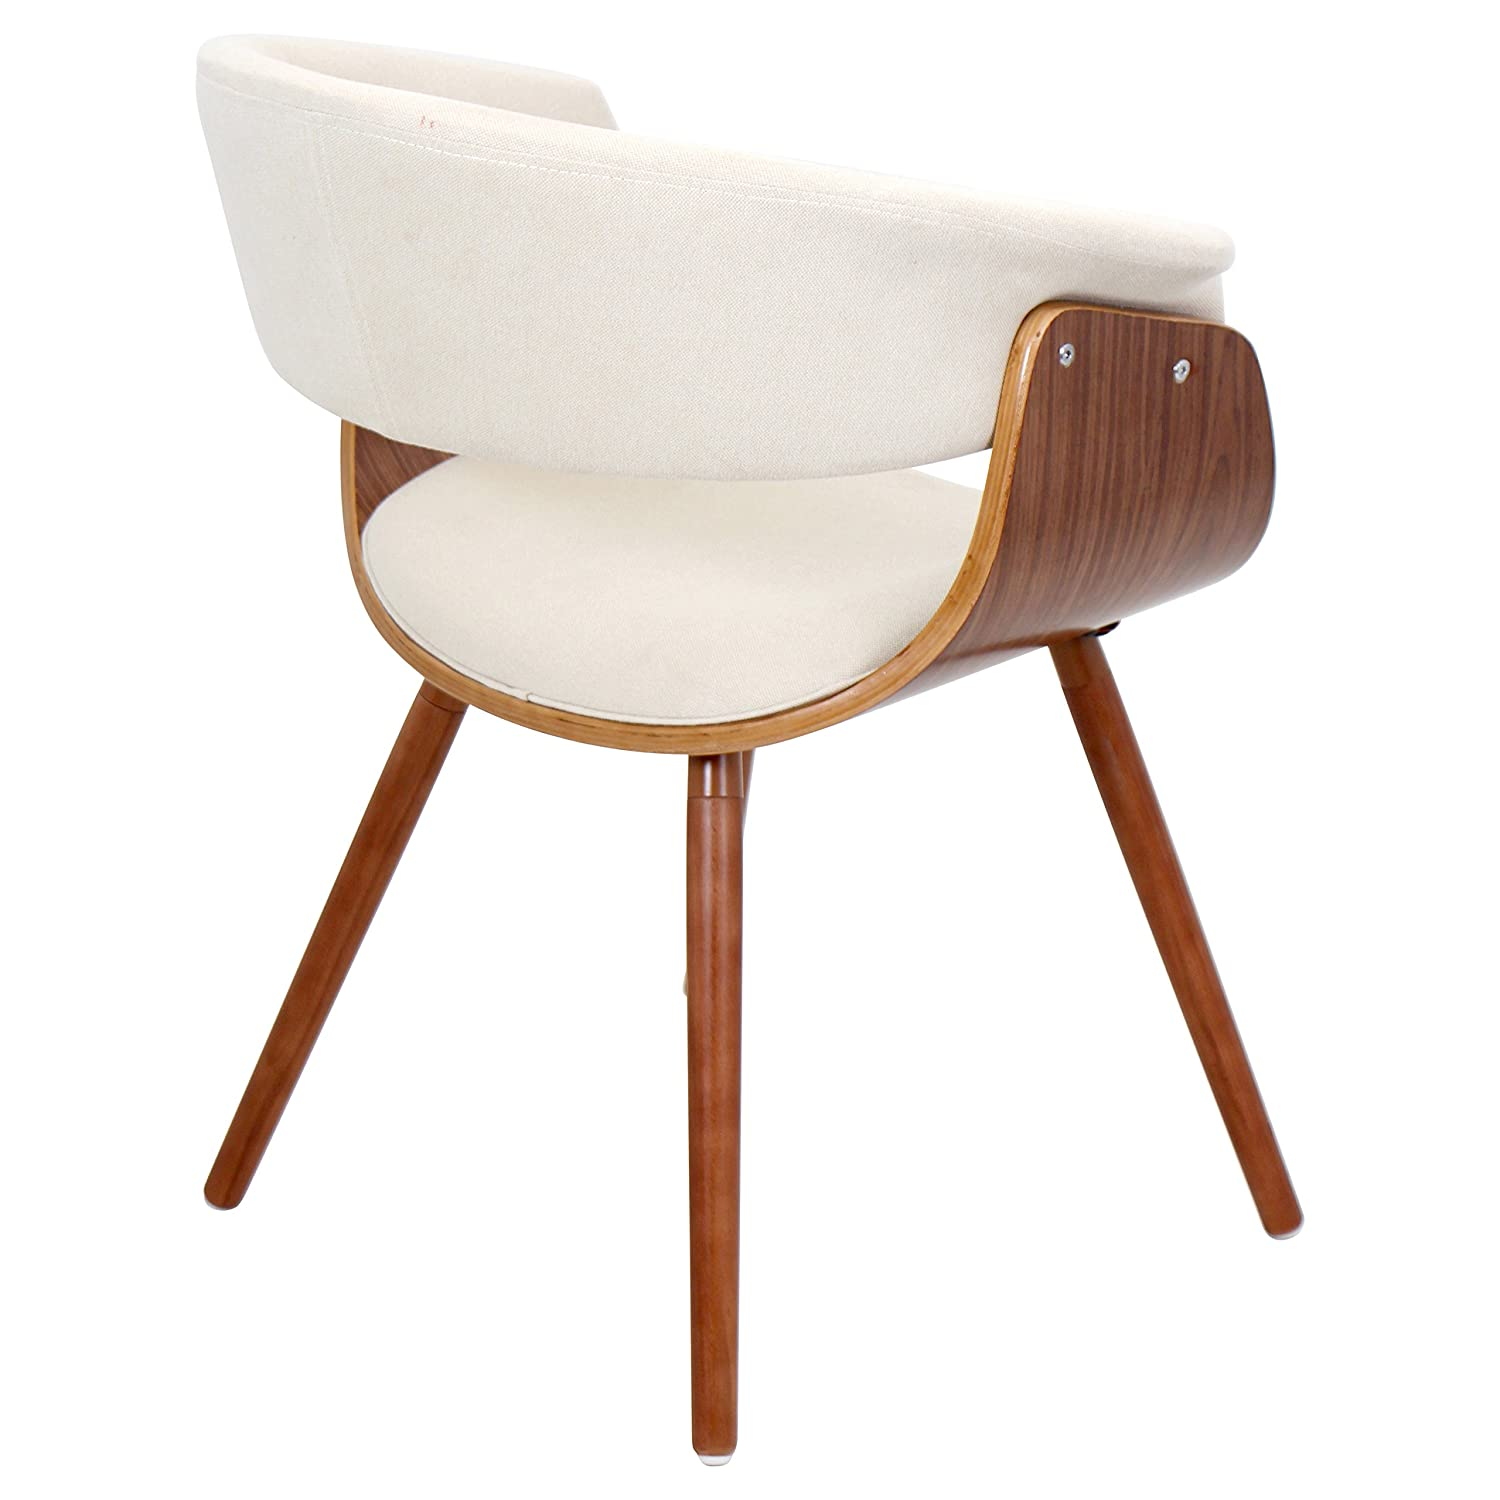 LumiSource CHR JY VMO WL+C Vintage Mod Mid Century Modern Chair In Walnut  Wood And Cream Fabric: Amazon.ca: Home U0026 Kitchen